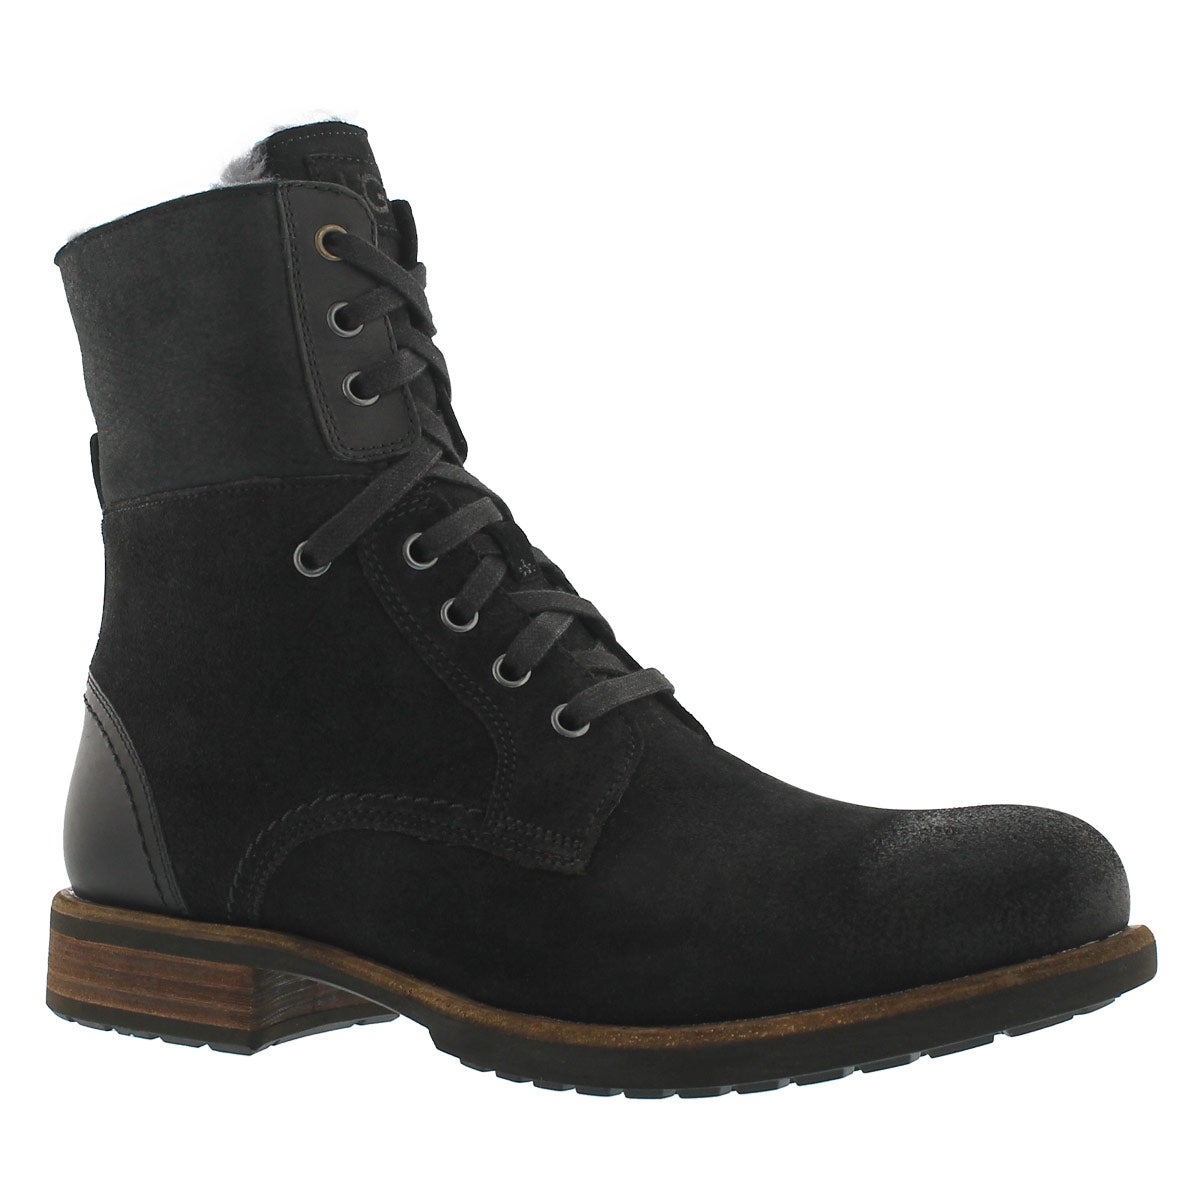 Men's  LARUS black lace up combat boots